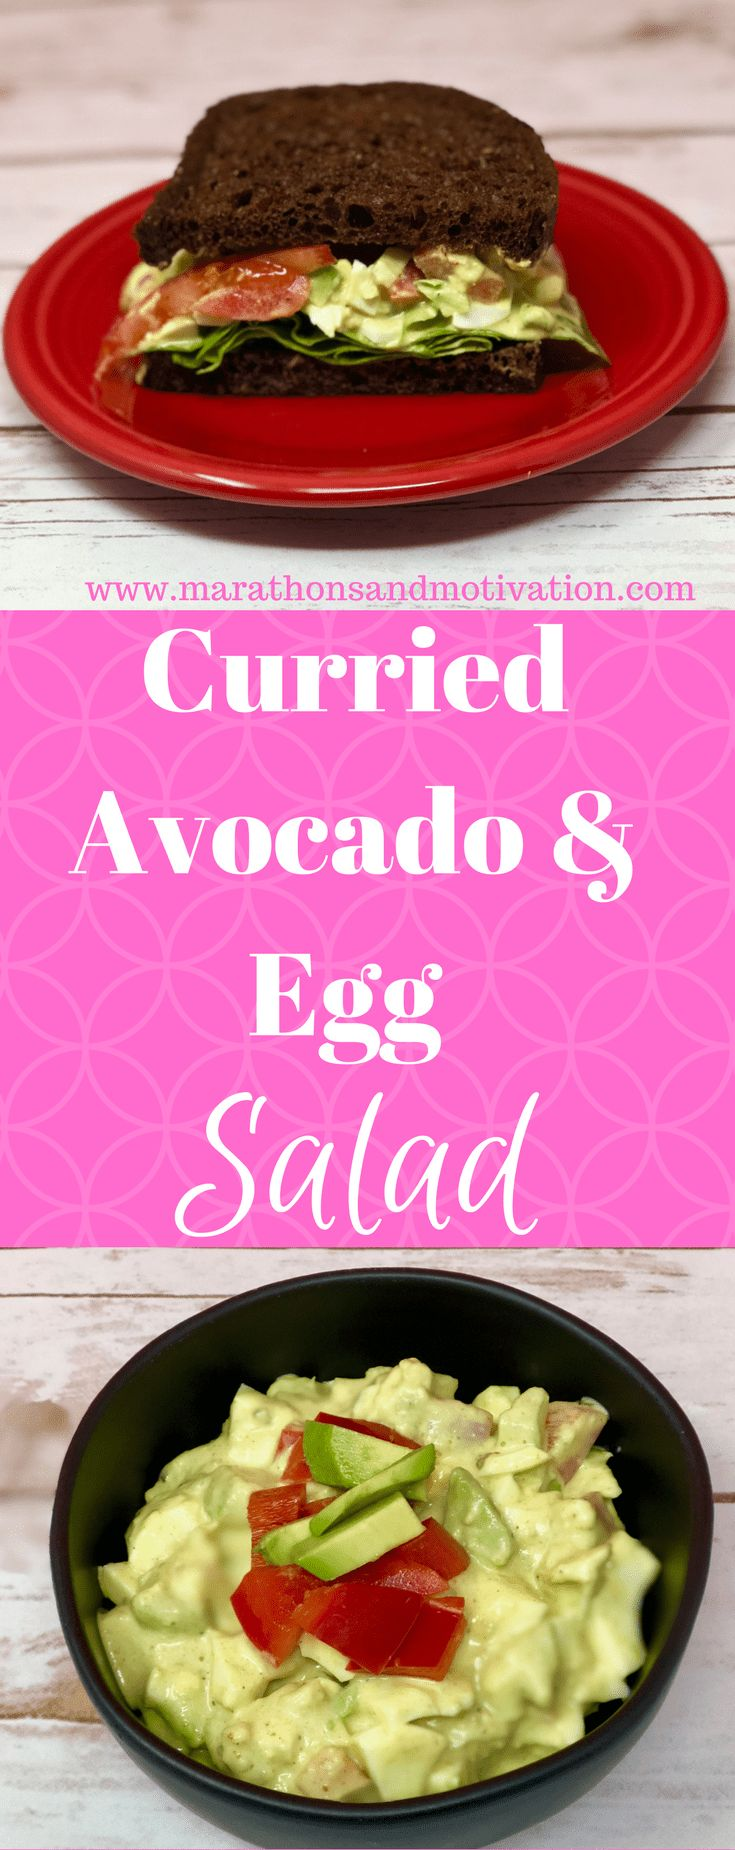 Jun 21, 2020 – Delicious Curried Avocado Egg Salad: The PERFECT way to use up those left over #hardboiledeggs from #east…